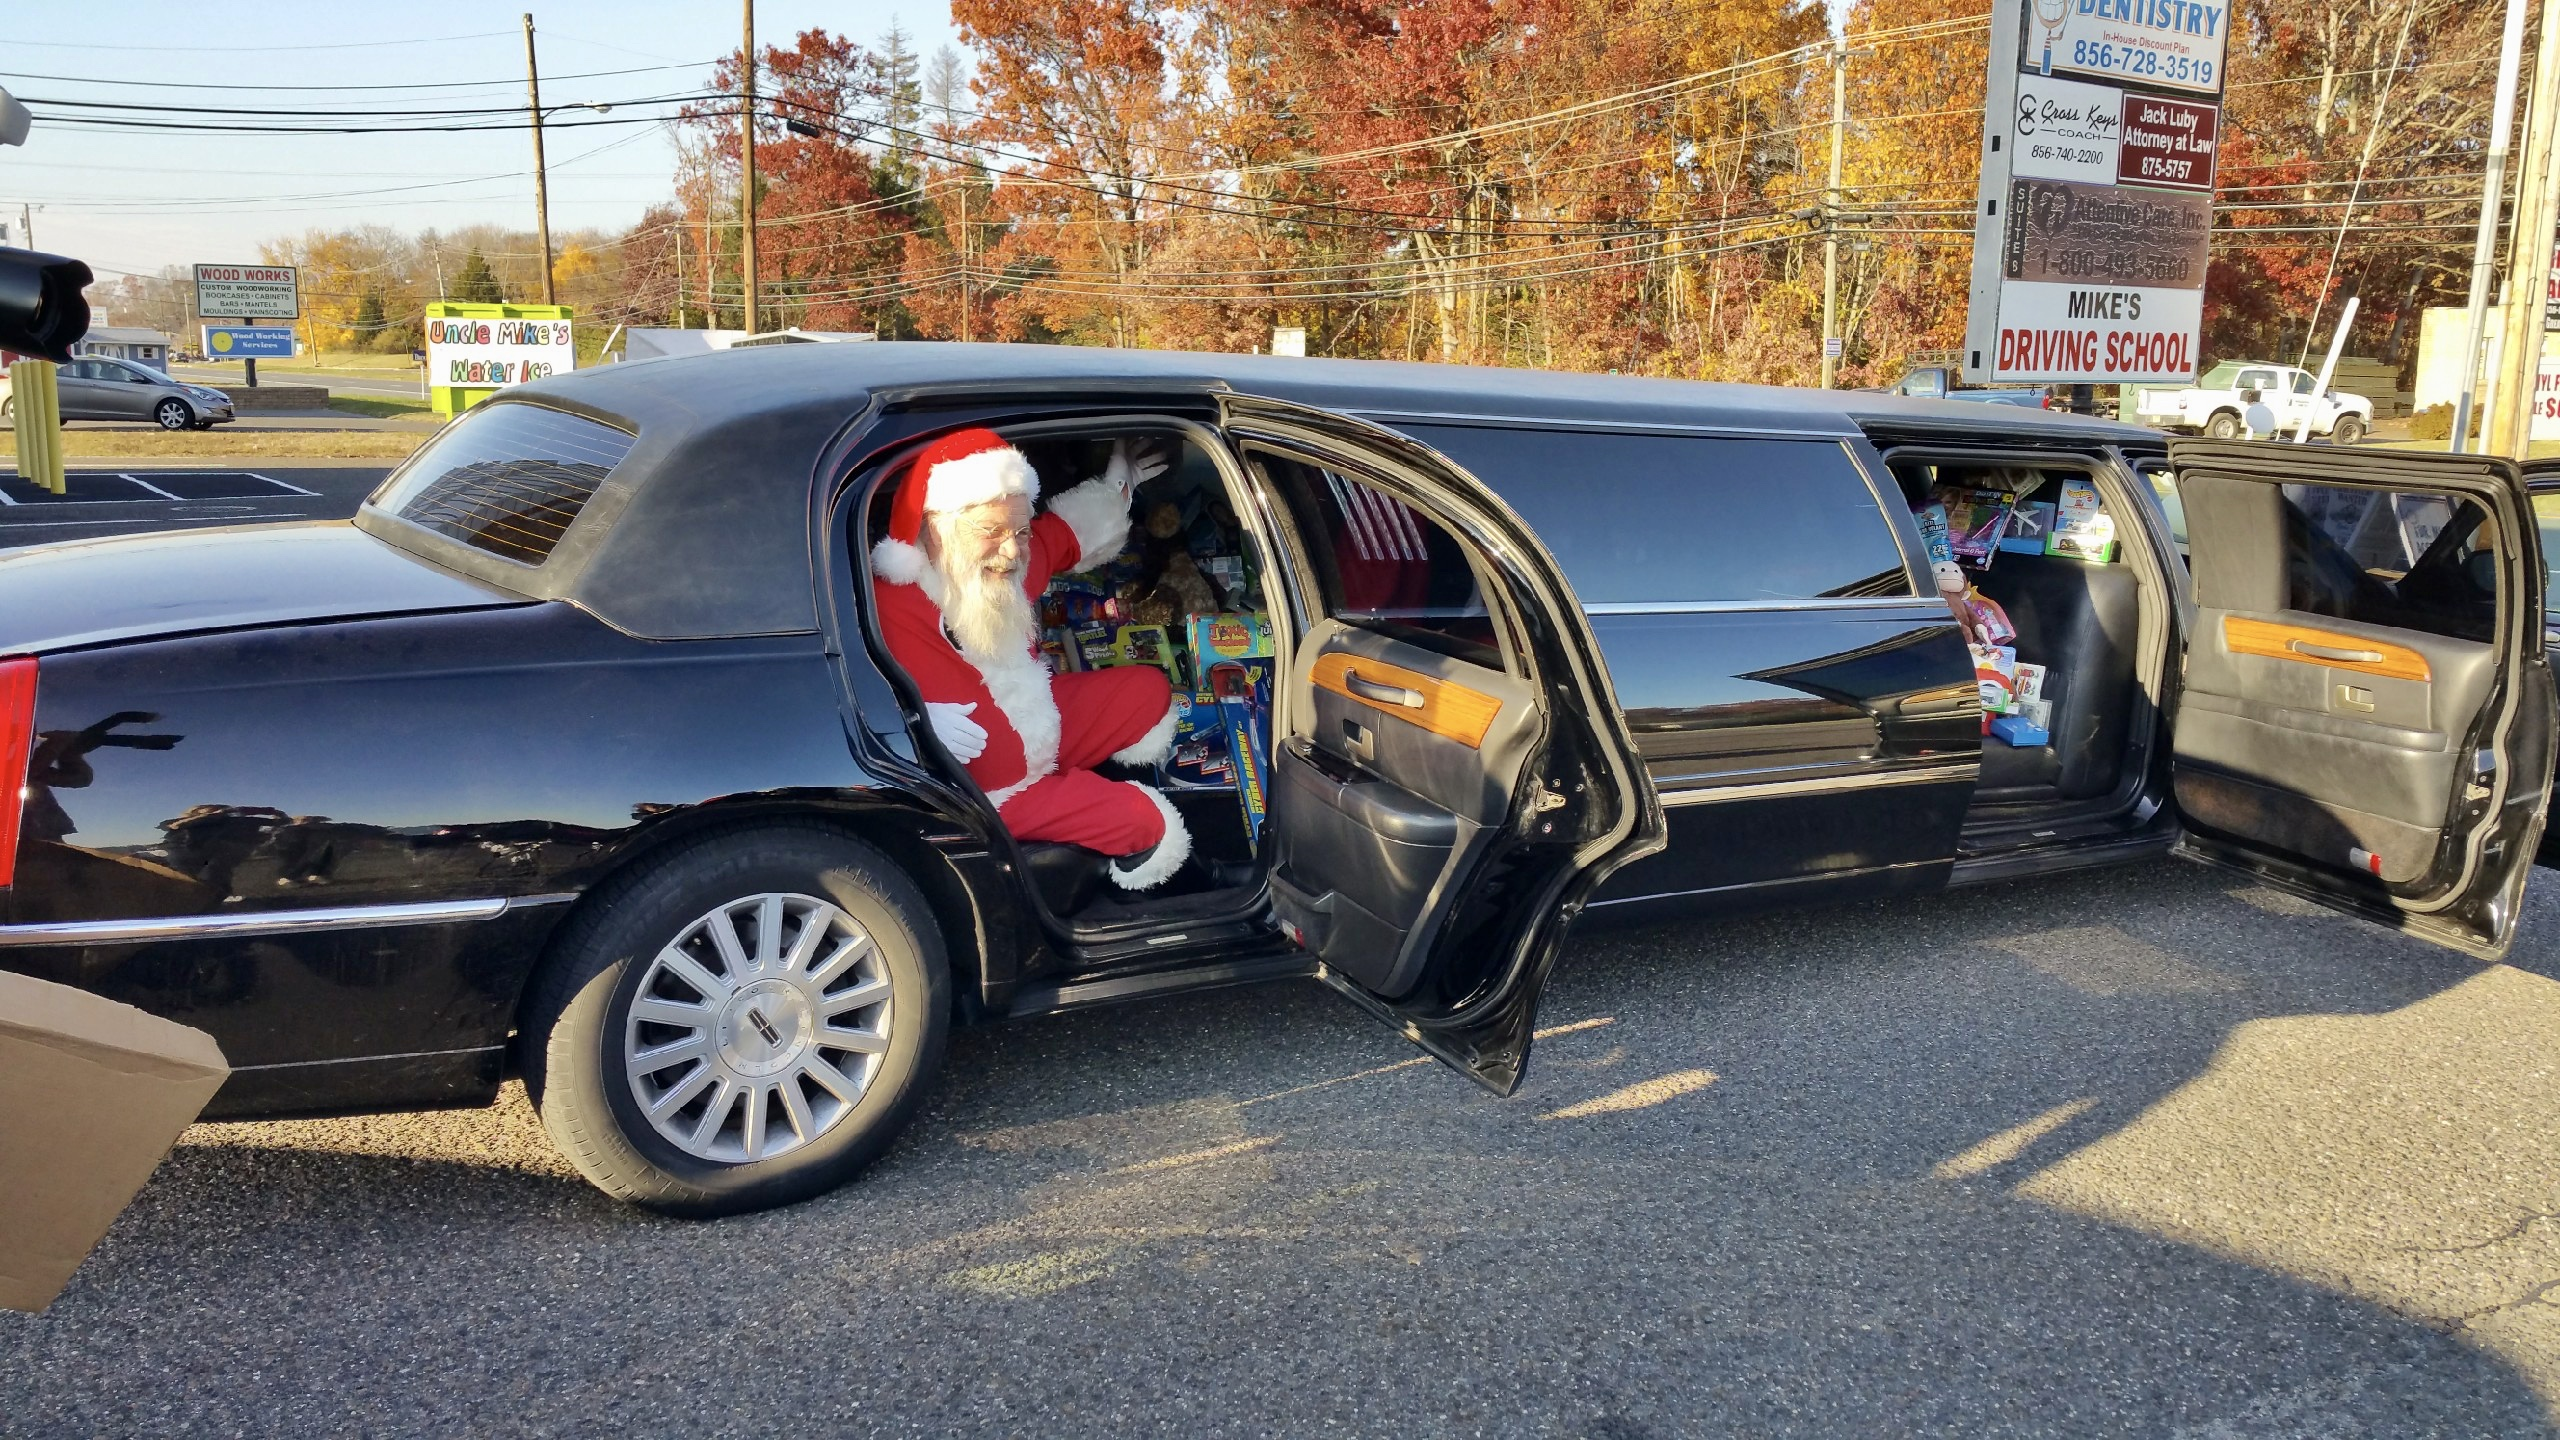 Santa getting out of limo